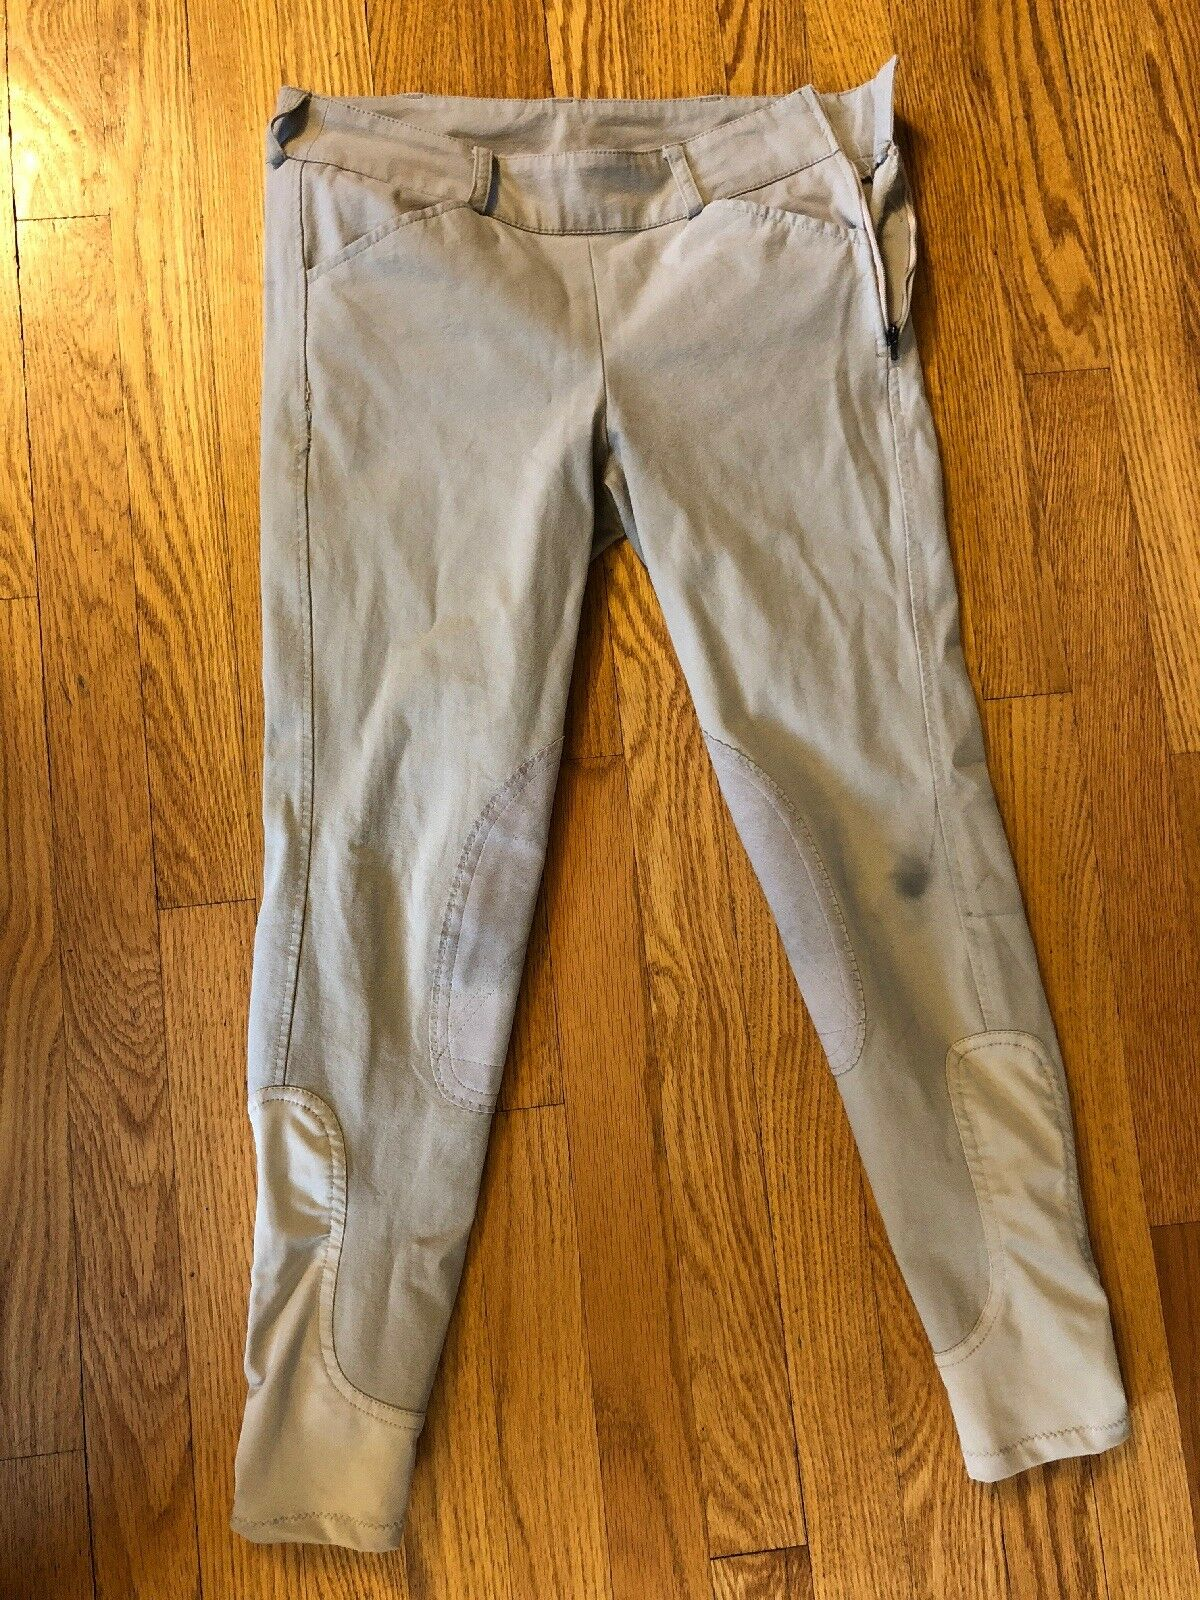 TAILORED SPORTSMAN Side Zip Equestrian RIDING Breeches Ladies  sz. 28